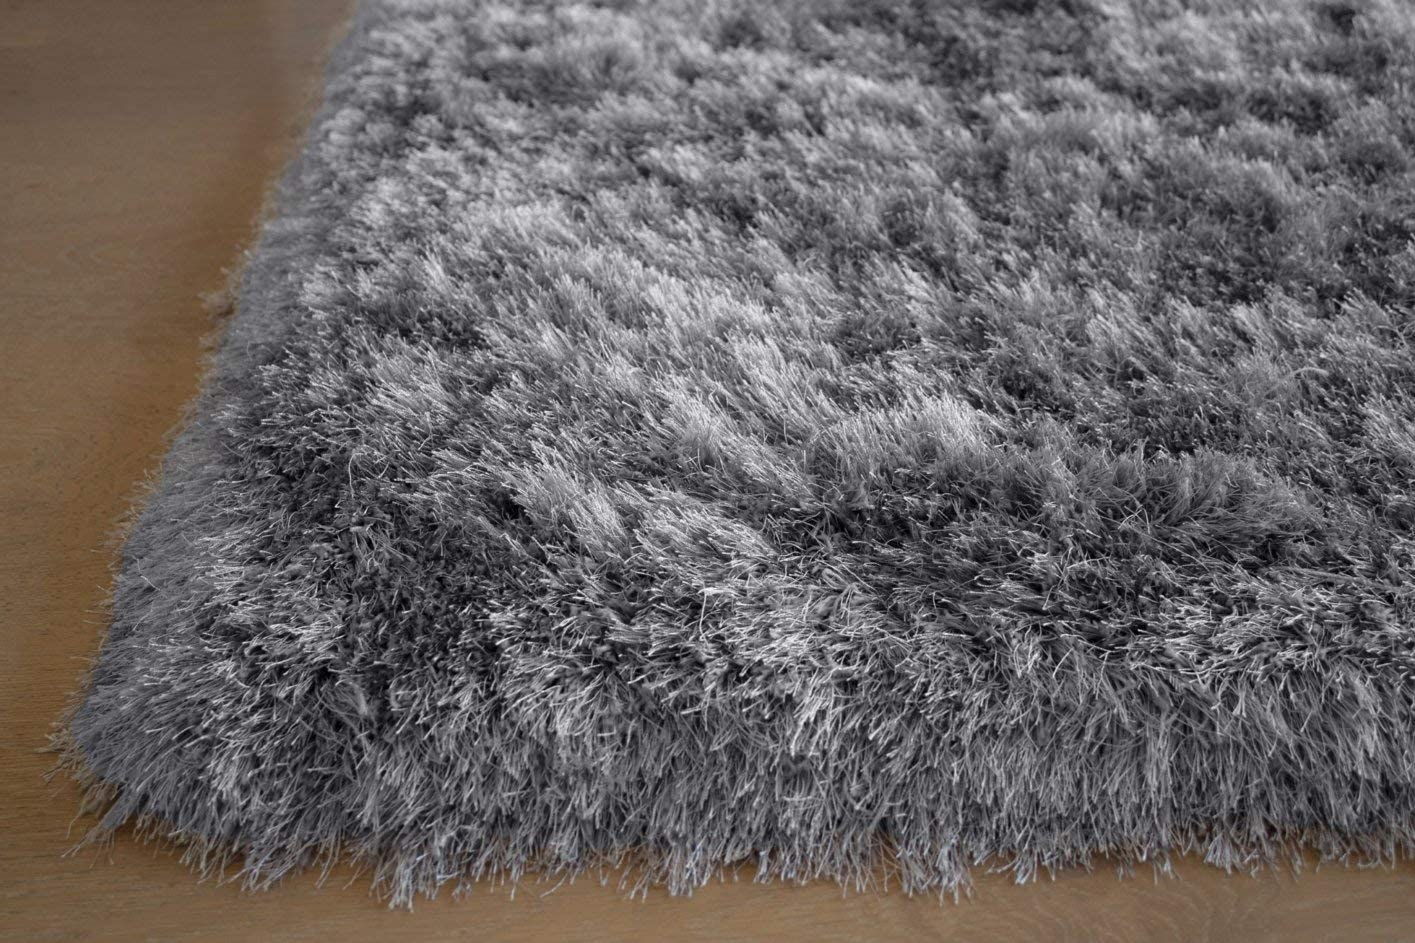 5 x7 Feet Light Gray Grey Colors Shimmer Shag Shaggy Area Rug Carpet Rug Decorative Designer Bedroom Living Room Modern Contemporary Hand Woven Knotted Plush Pile Hard Canvas Backing